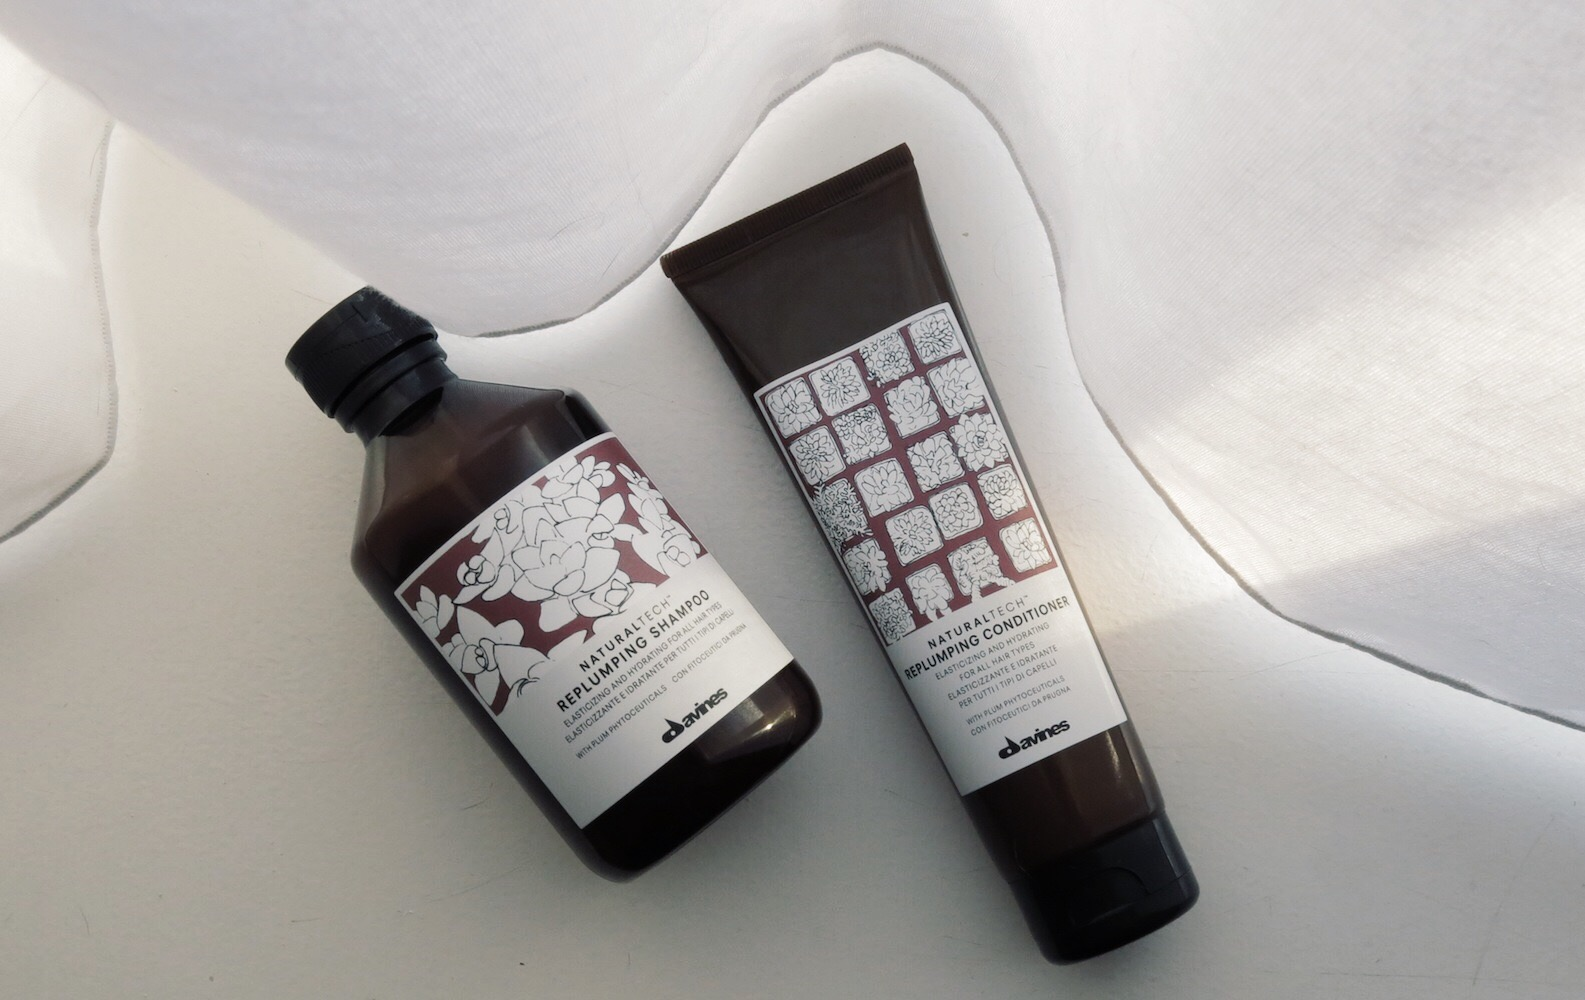 I also love the design of the shampoo bottle which is simple but different from what we see everyday.